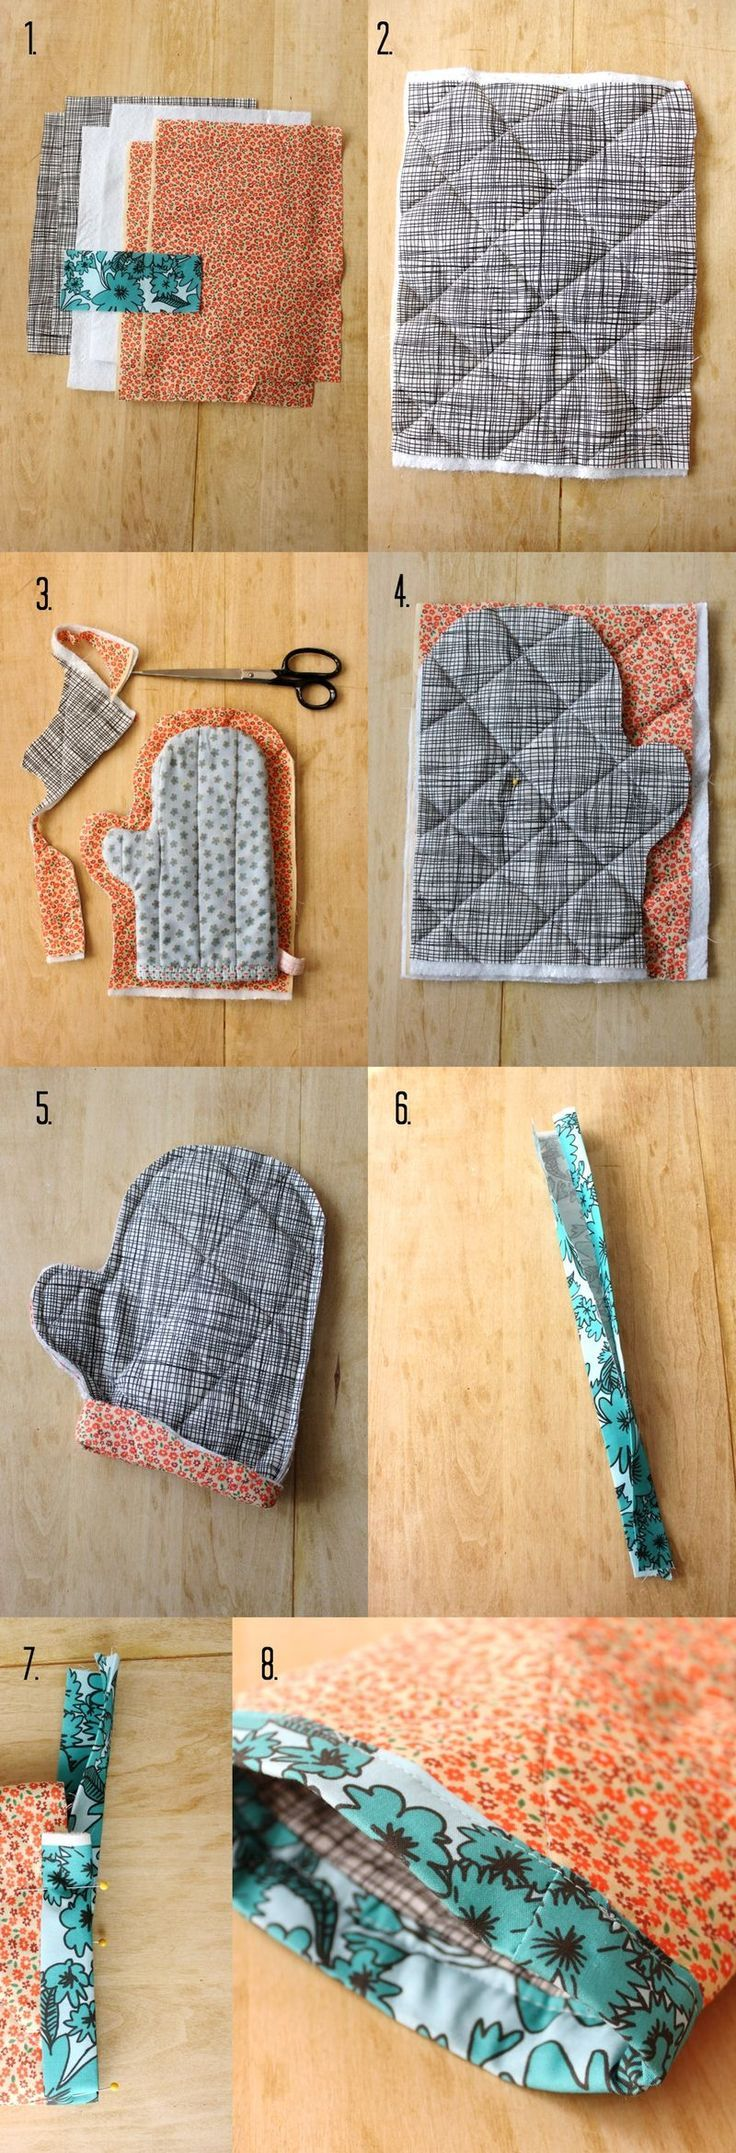 Make Your Own Oven Mitts!